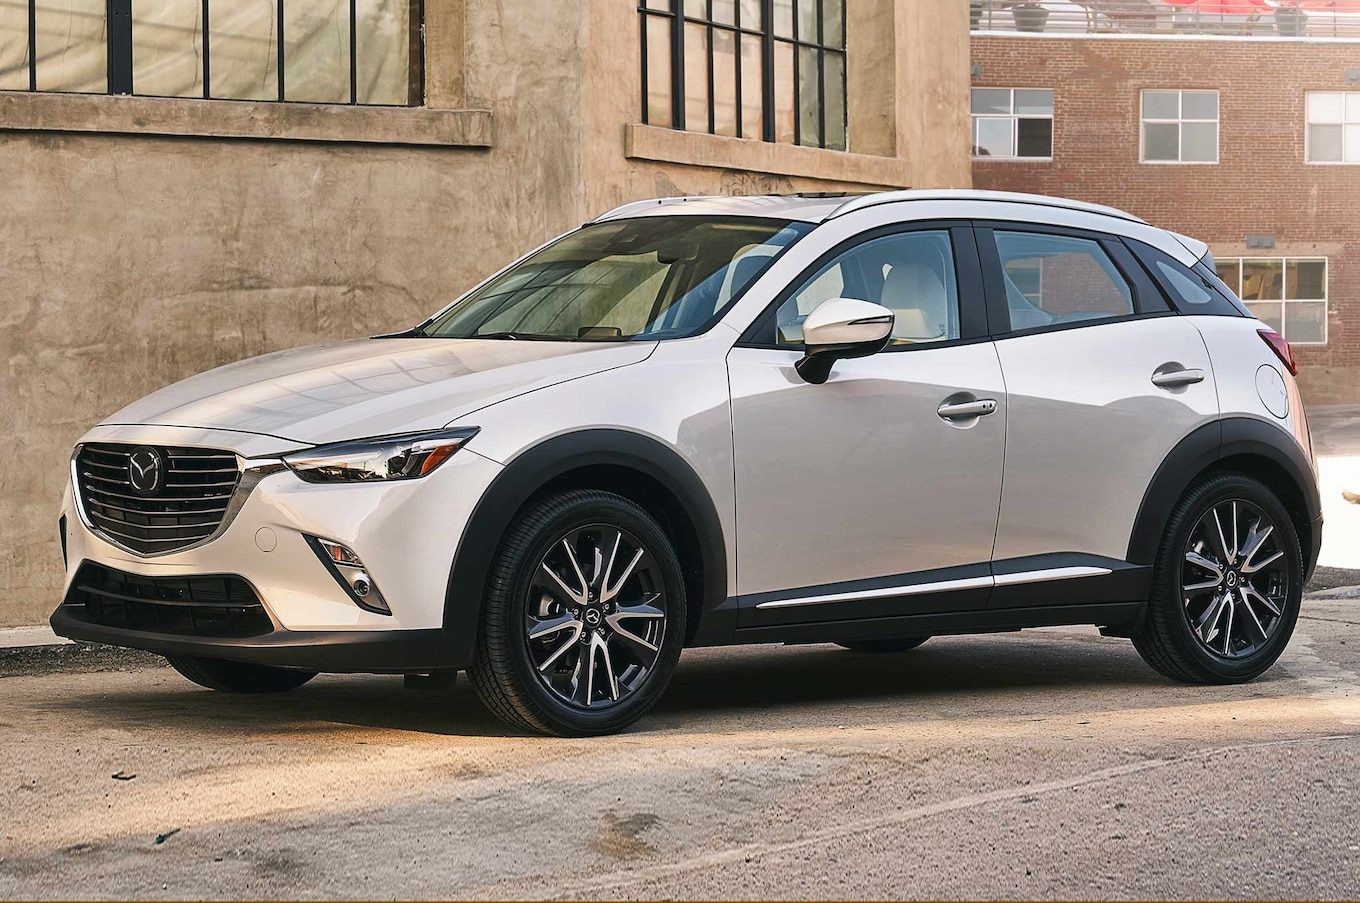 2018 Mazda CX-3 Gains New Tech, Chassis Updates - Motor ...